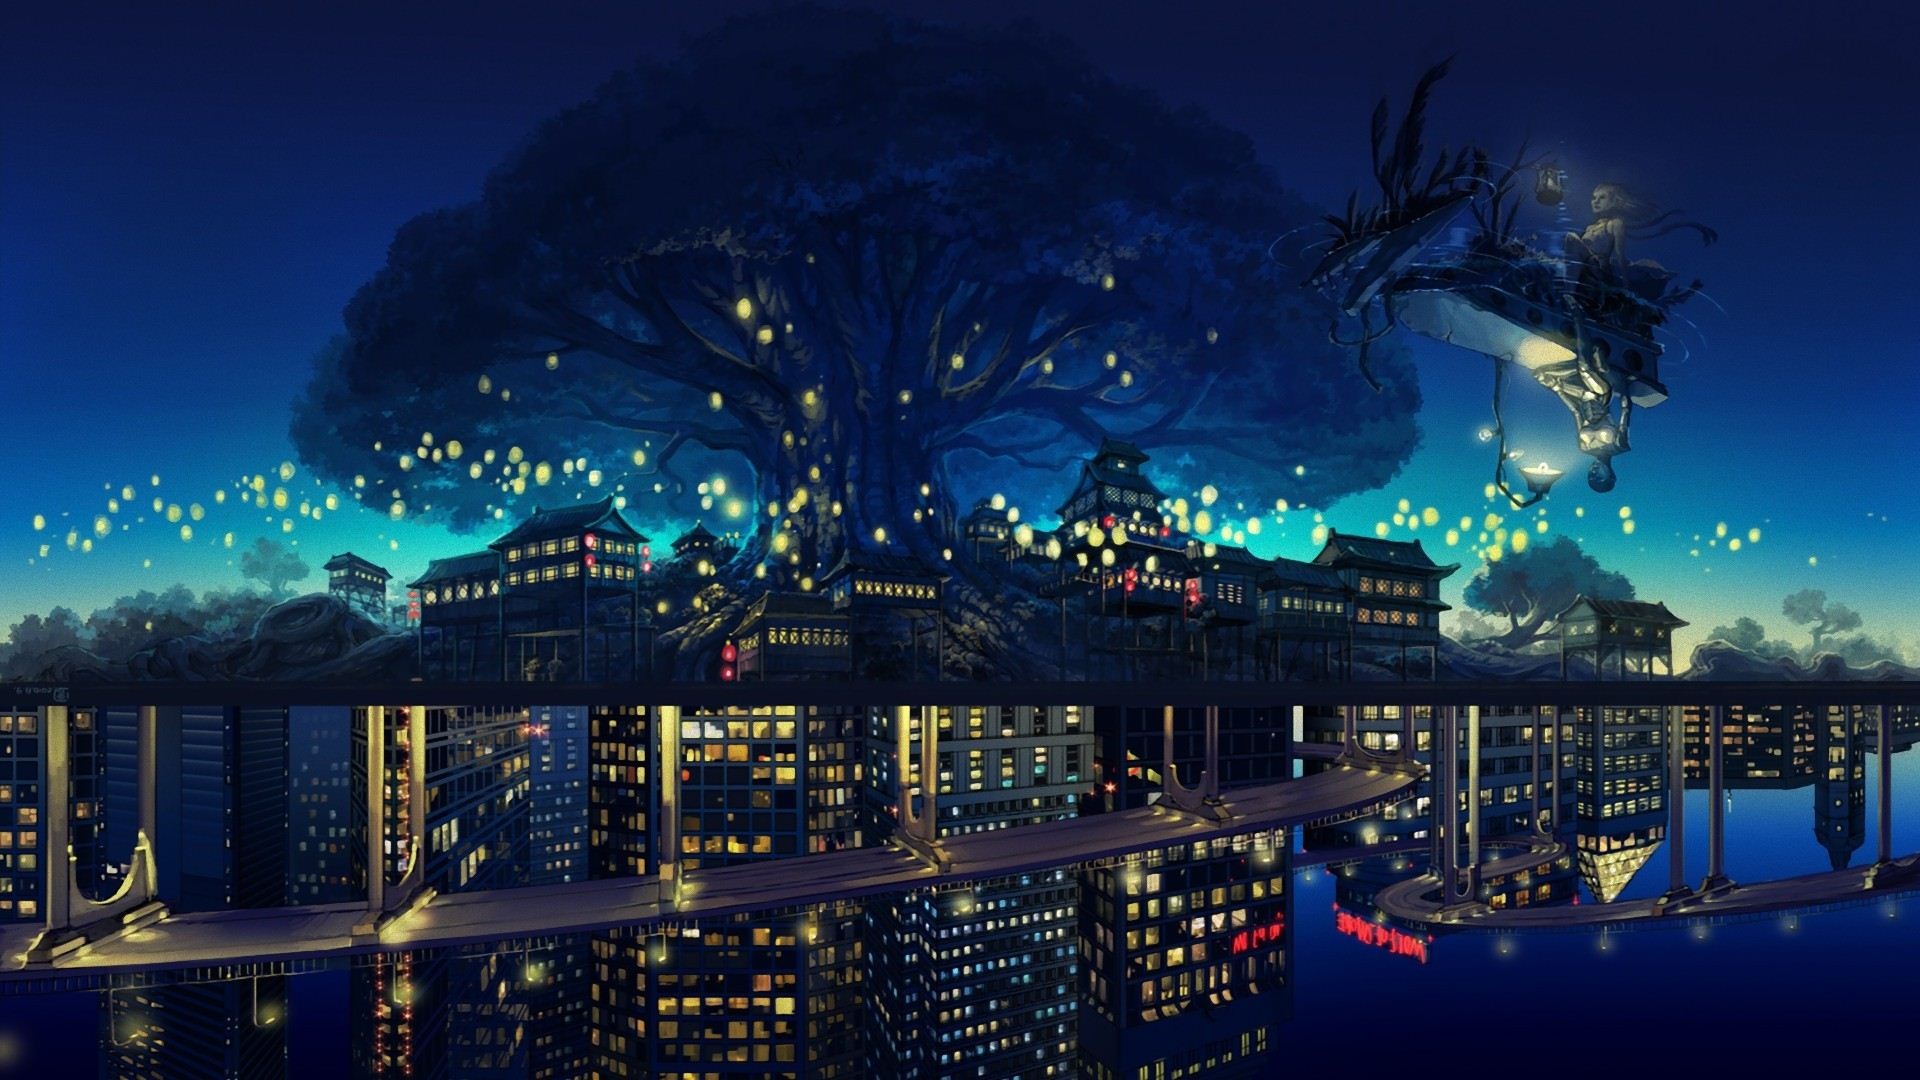 Free Download Anime Tree City Cool Wallpapers 1920x1080 For Your